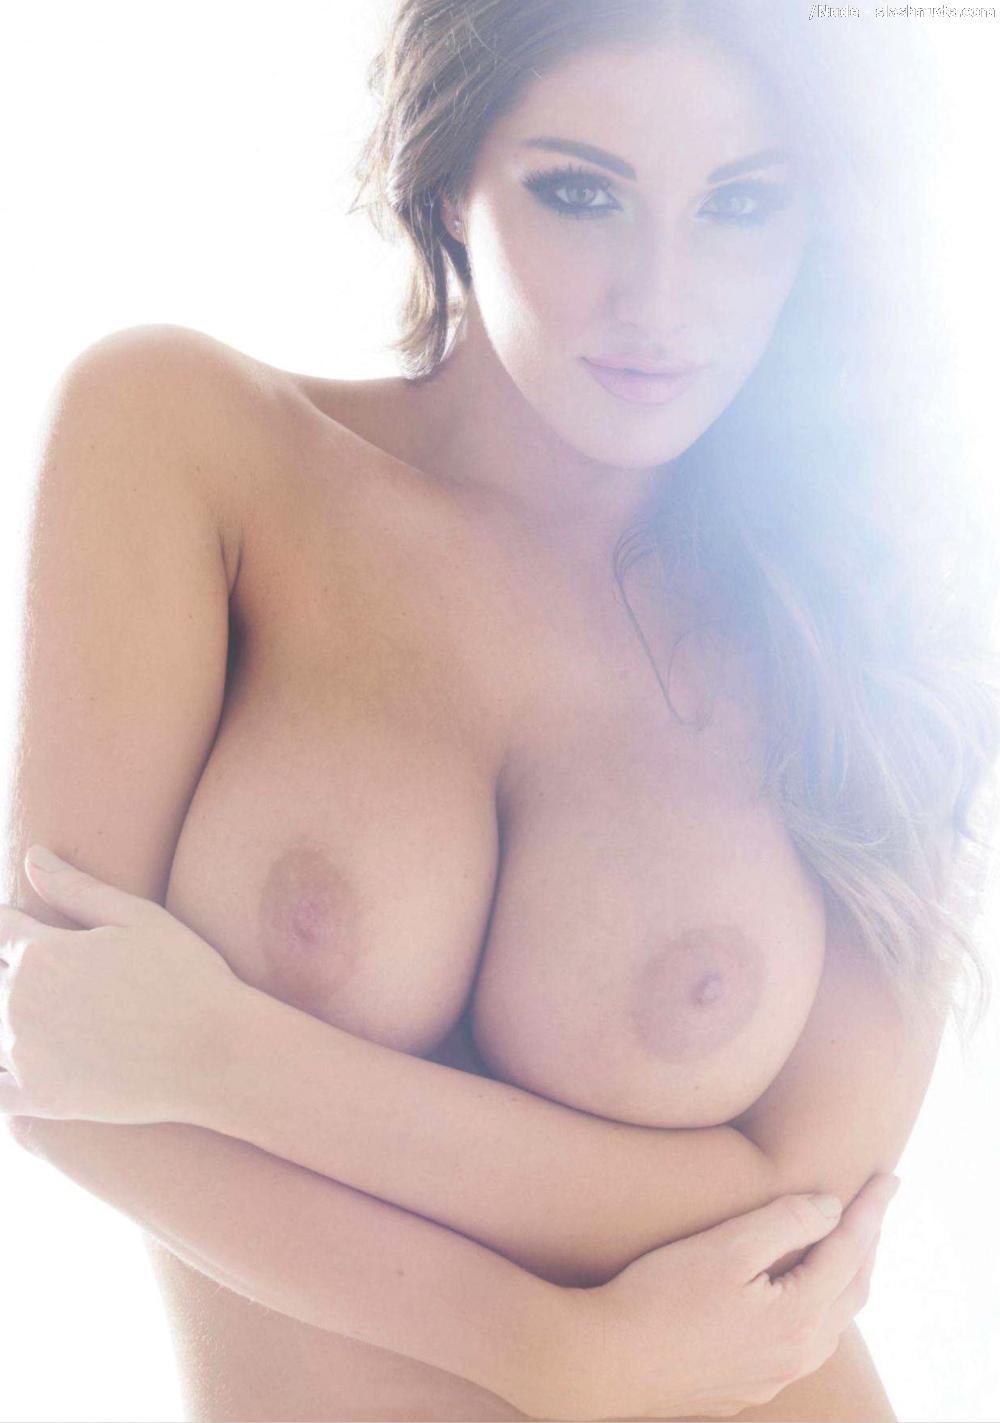 Hot girls with big boobs naked